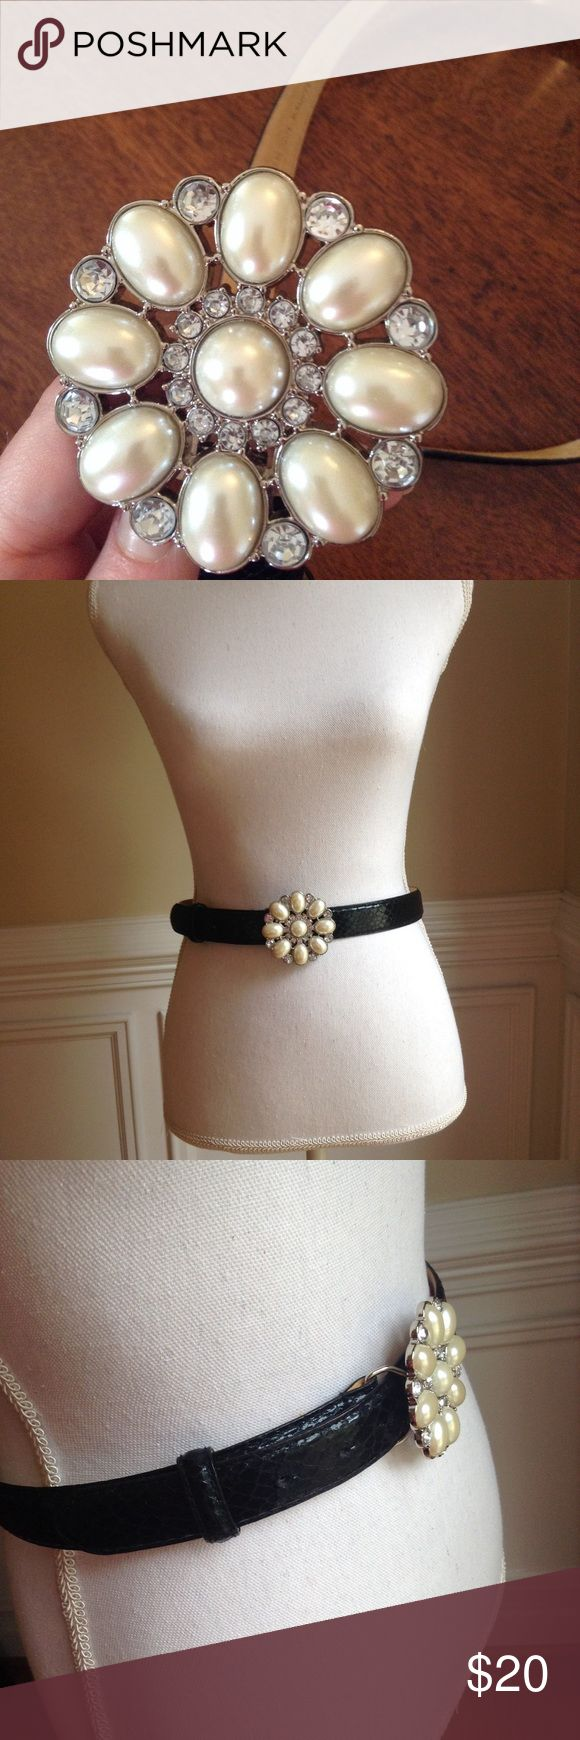 """Embossed Faux Leather Pearl Buckle Belt Sz. S Black embossed faux leather belt with Pearl and rhinestone buckle. Size small. EUC.  35"""" approx.  Smoke free home. Thanks for looking! :) White House Black Market Accessories Belts"""